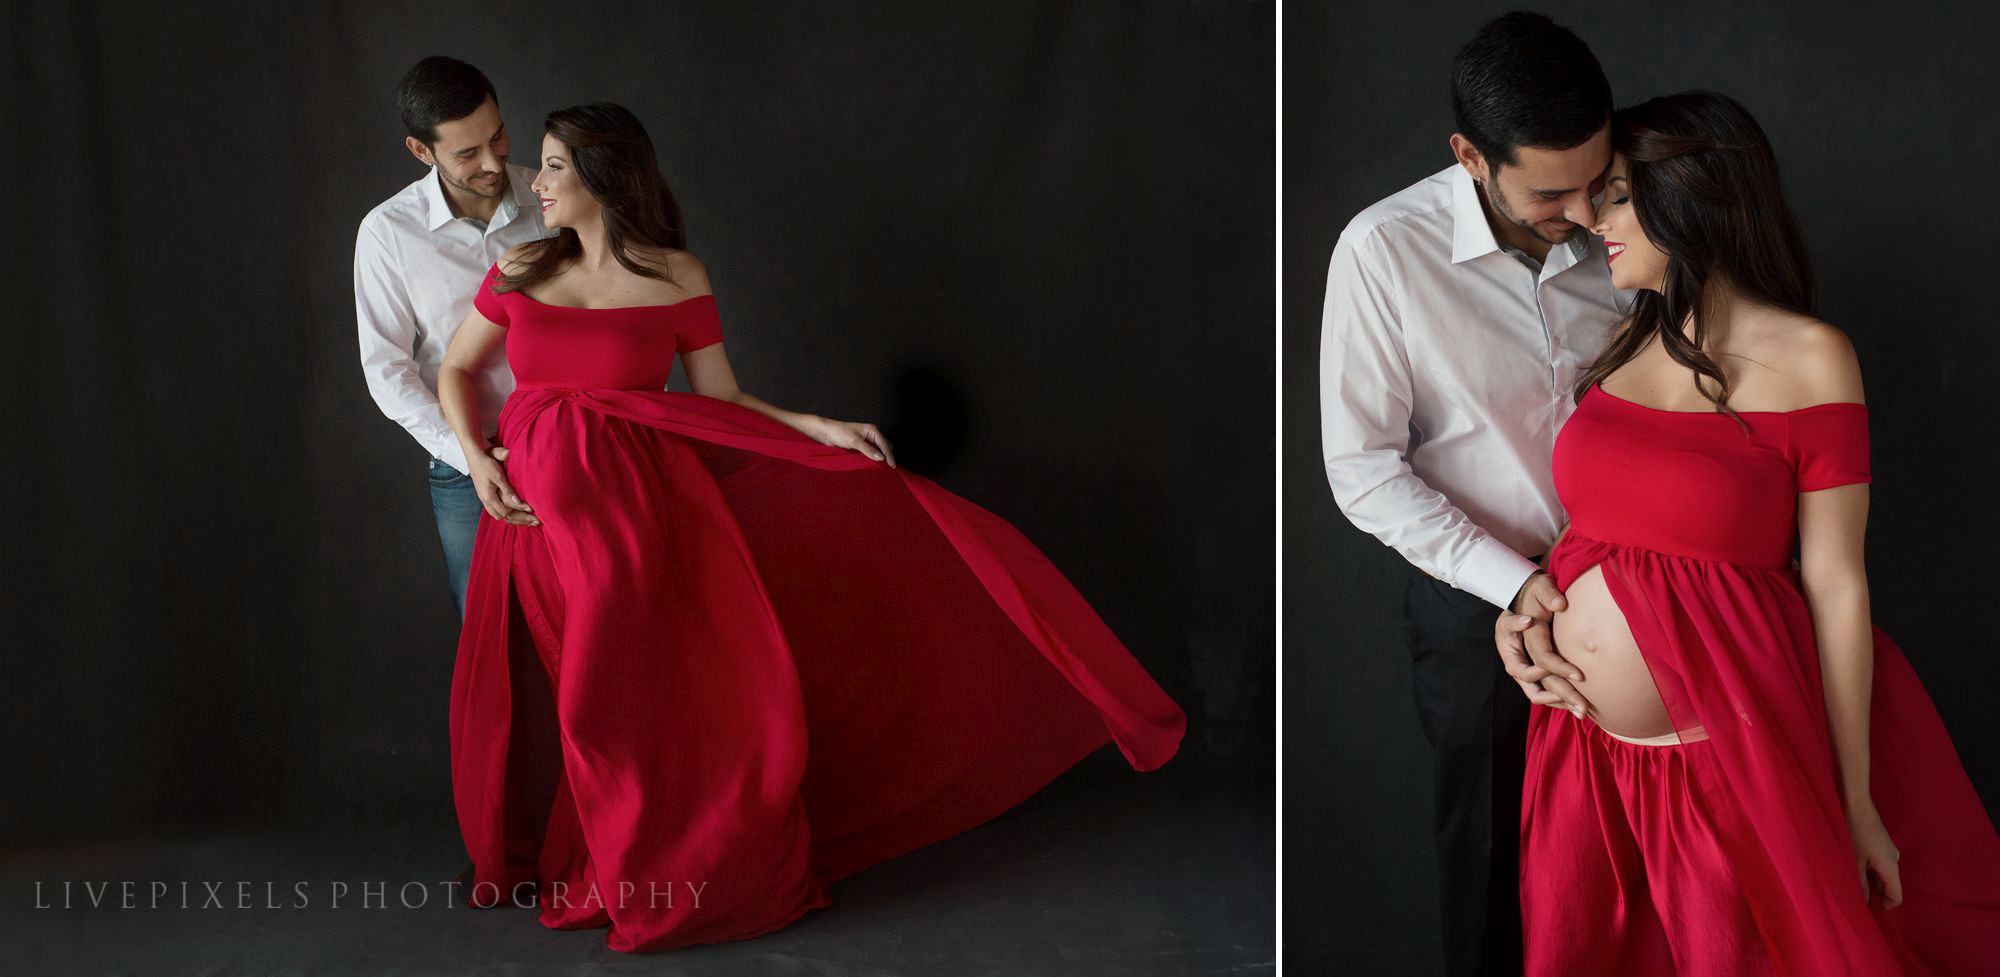 Maternity Portraits in red flowy dress - Livepixels Photography, Toronto / livepixelsphotography.com